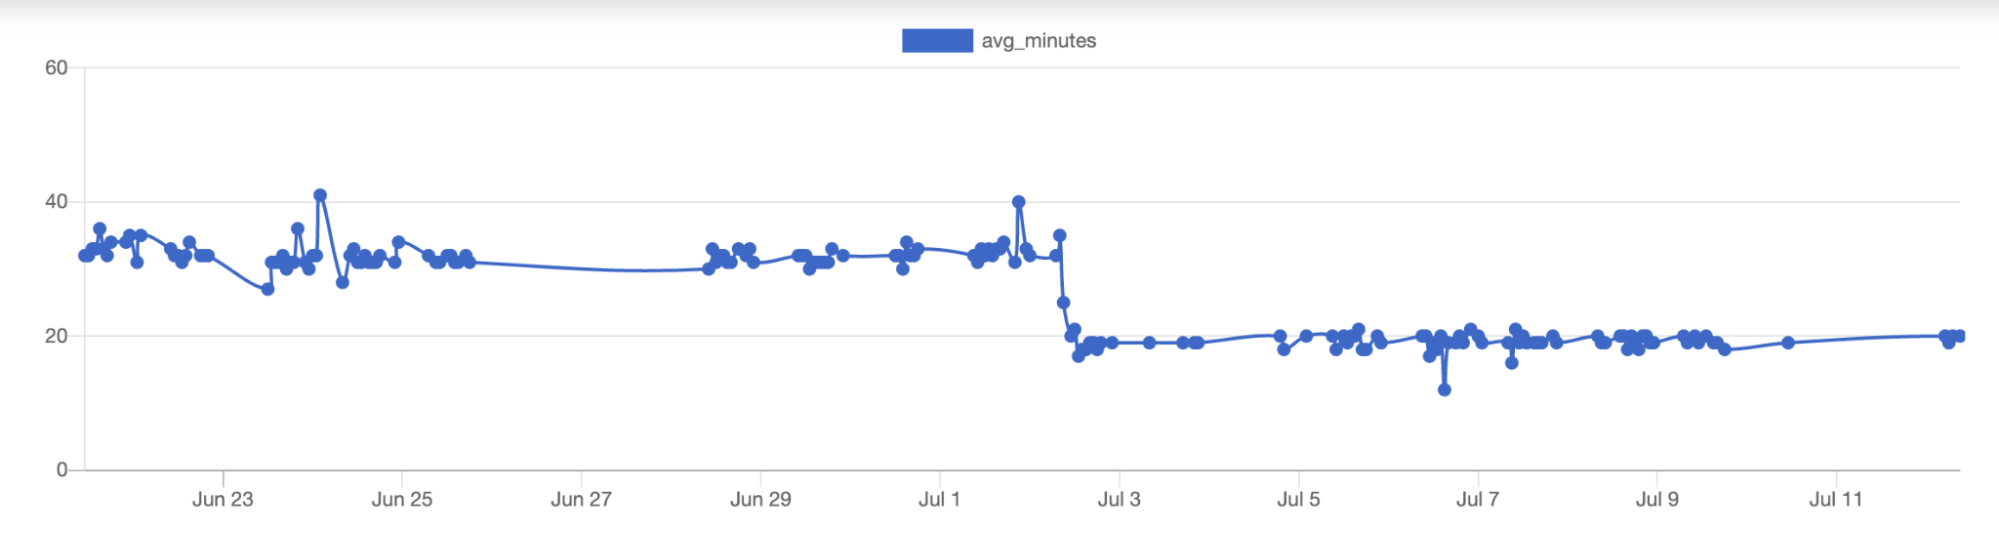 A graph showing a steady ~15 minute reduction in the average Android test job times